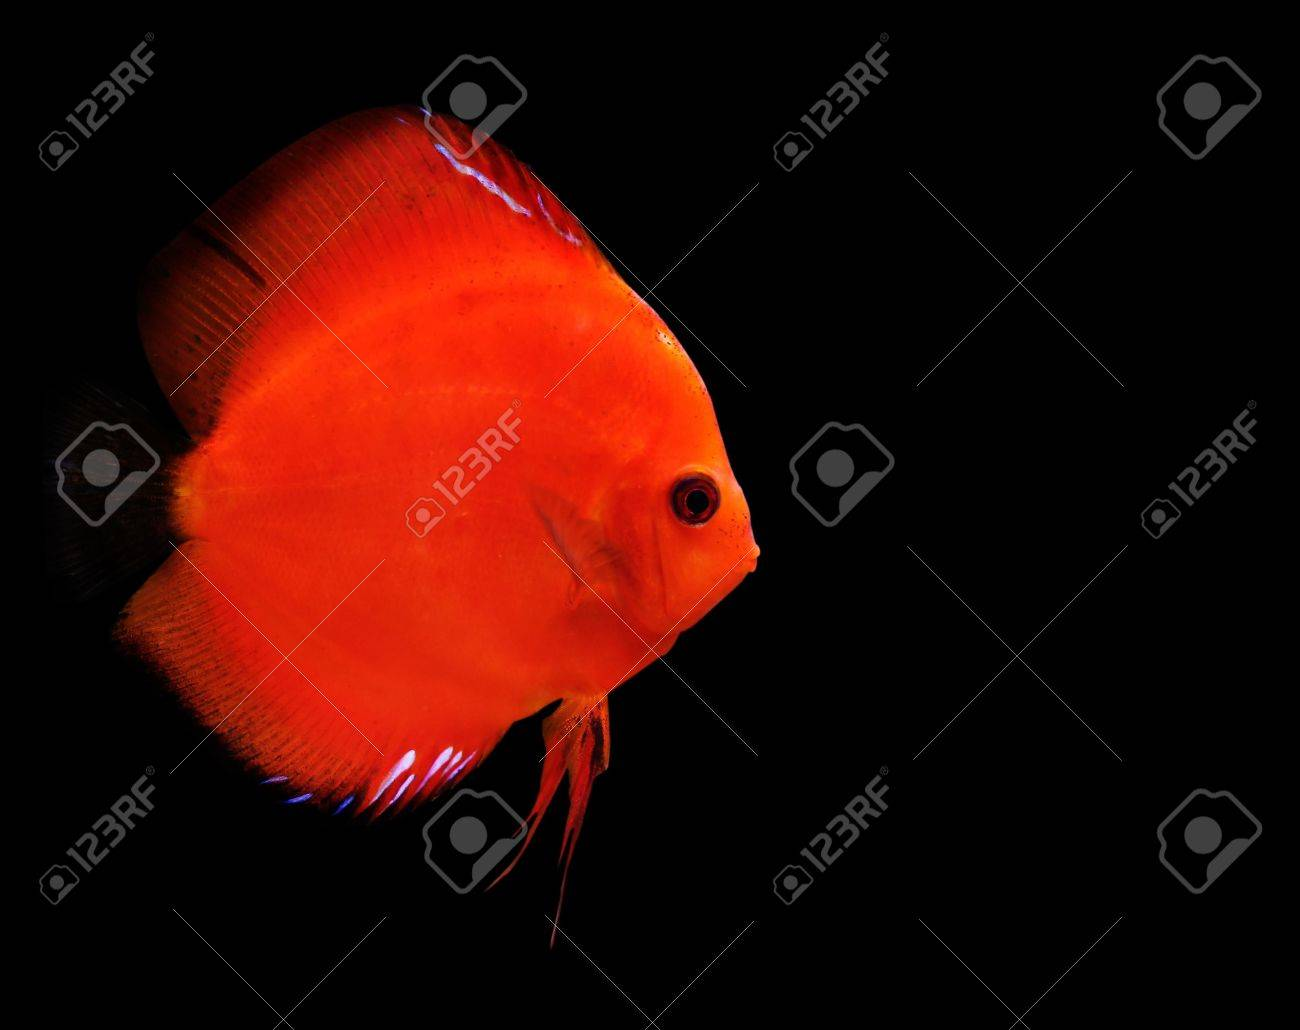 Colorful Tropical Symphysodon Discus Fish On Black Background Stock ...